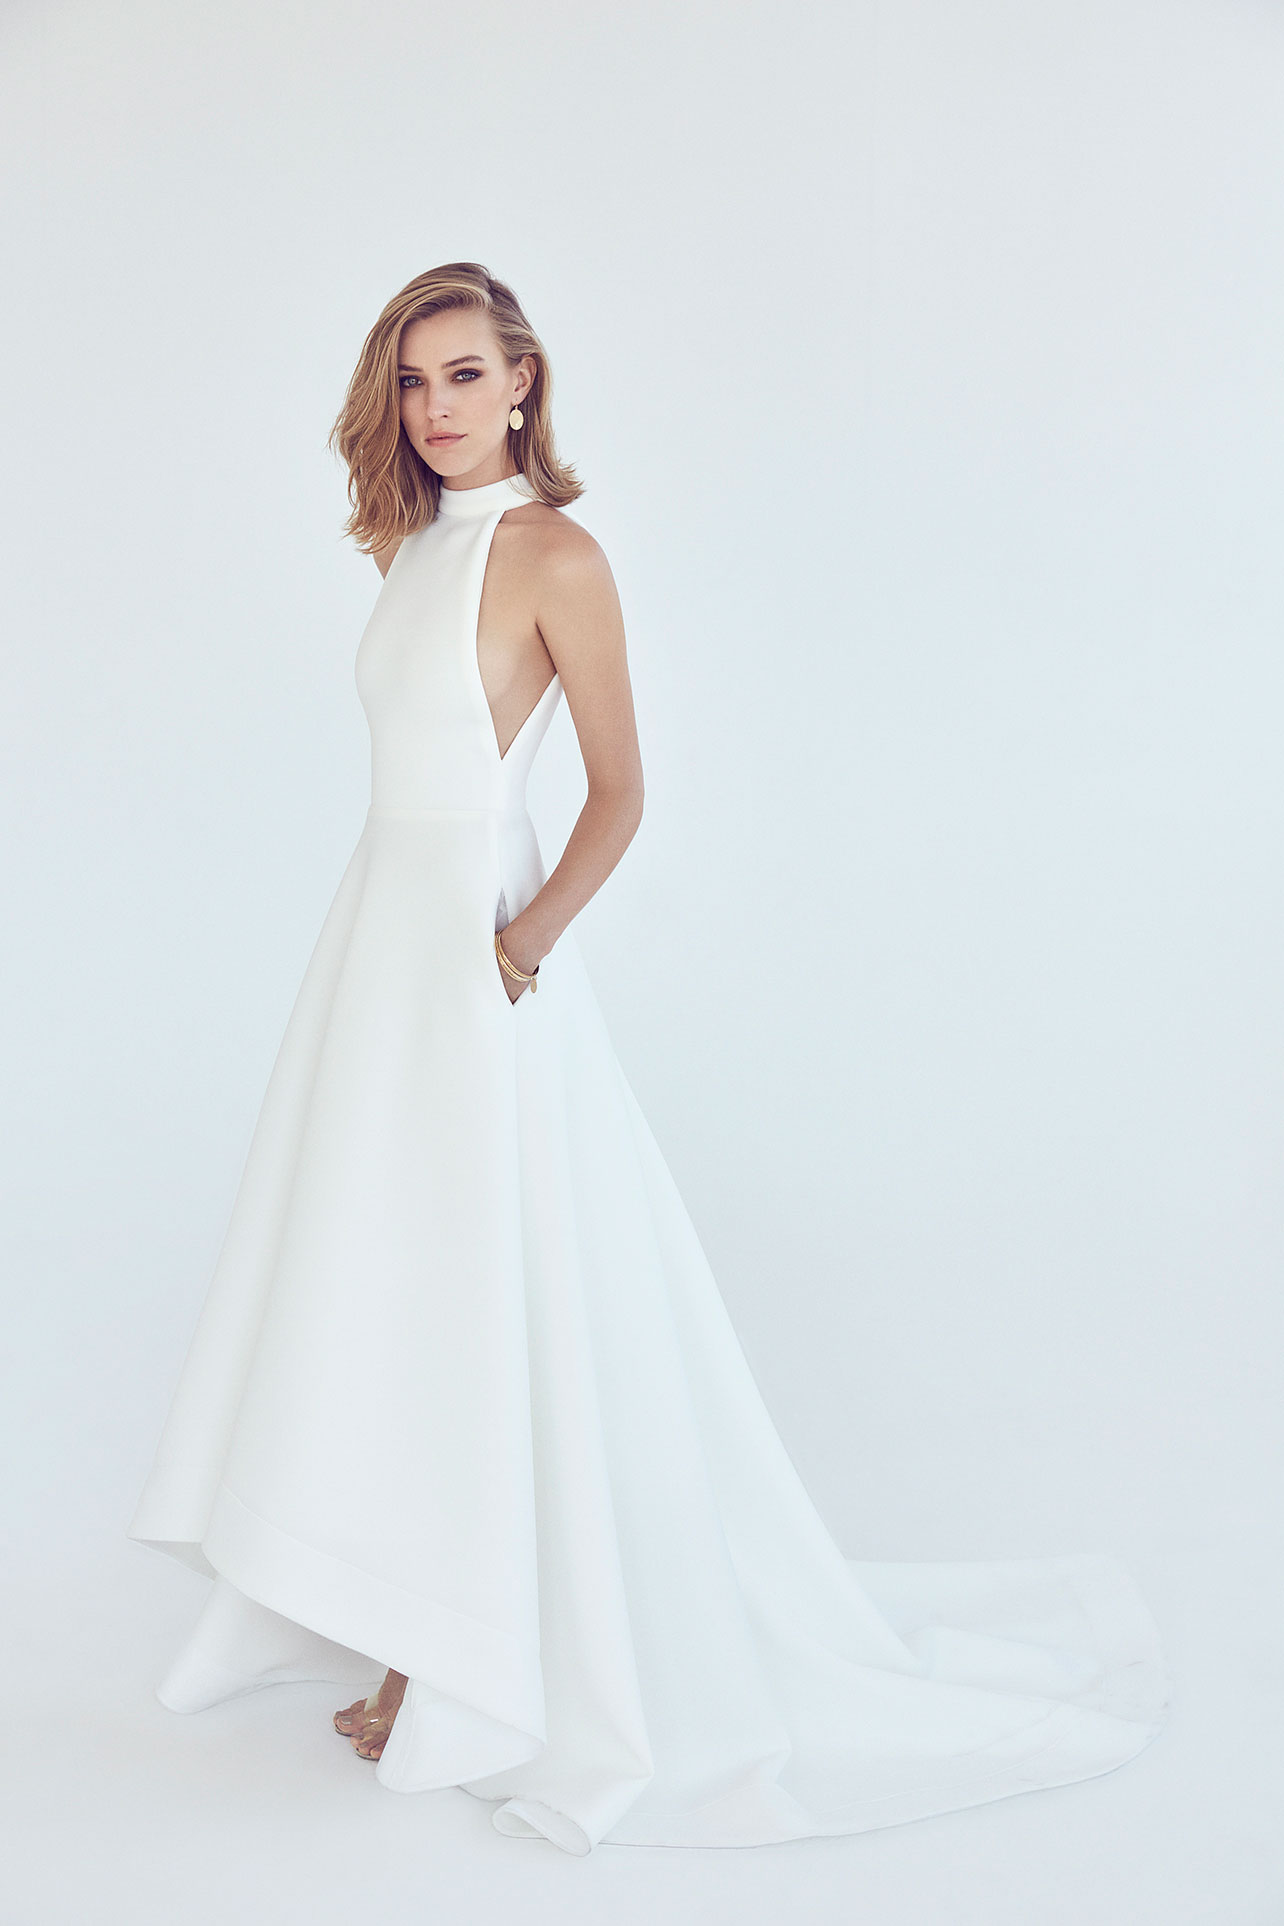 Our Guide To Couture Wedding Dresses - Suzanne Harward featured on LOVE FIND CO.